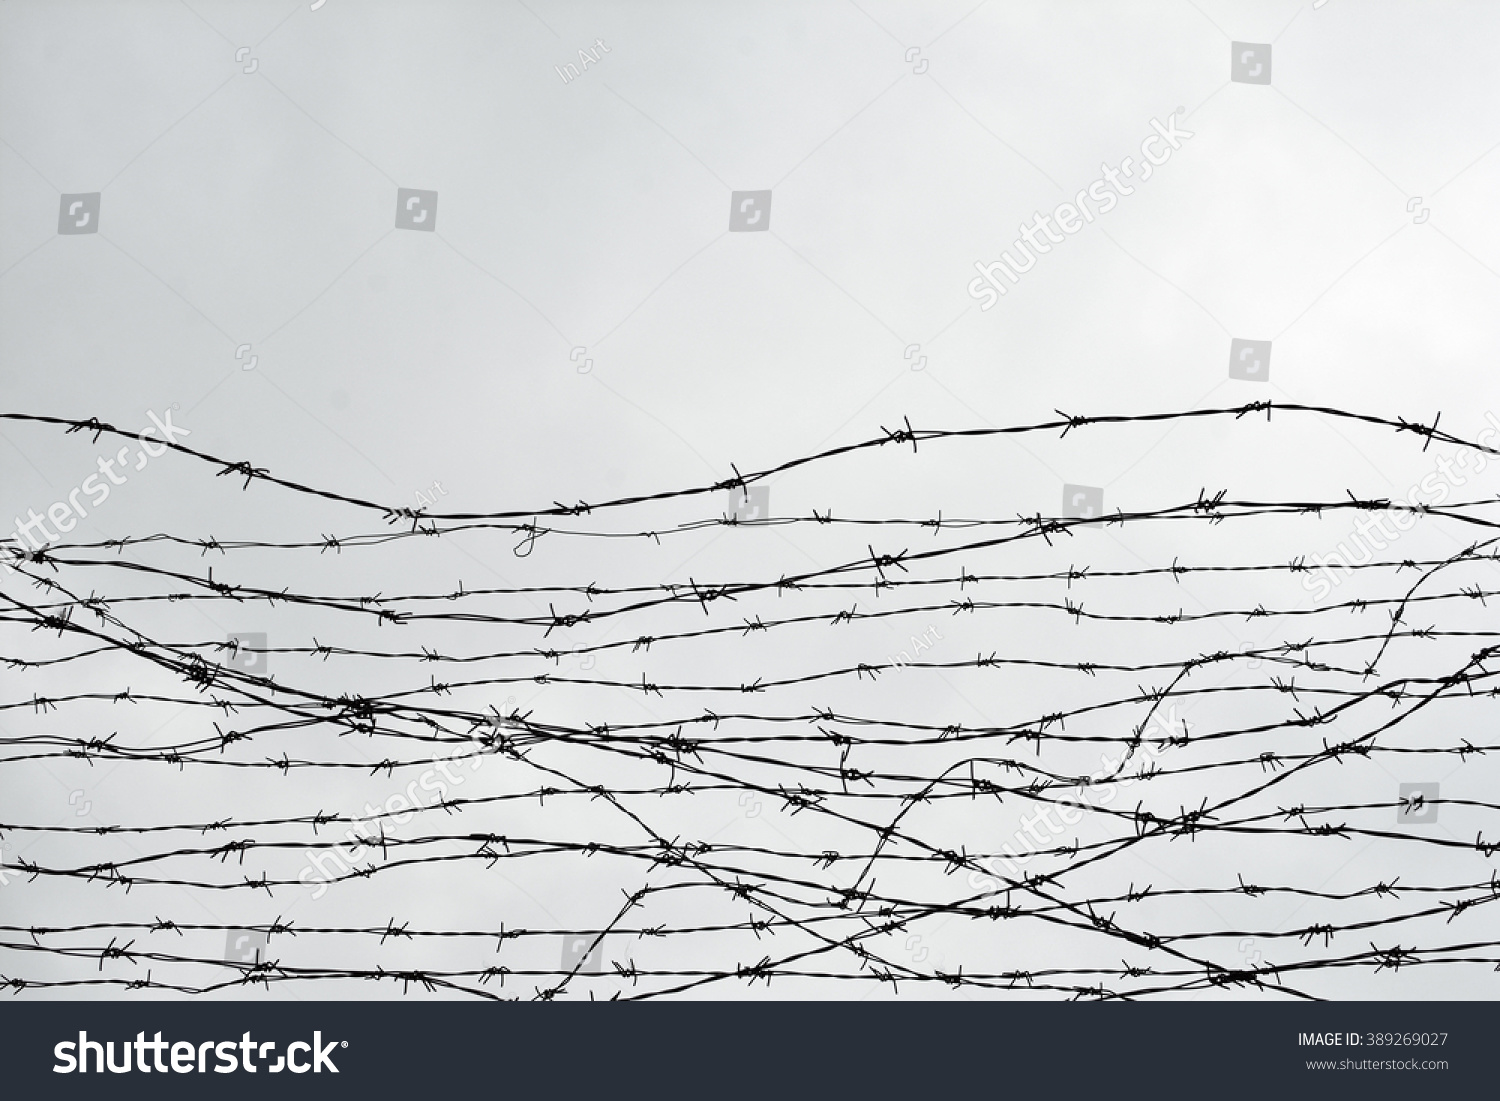 Fencing Fence Barbed Wire Let Jail Stock Photo (100% Legal ...